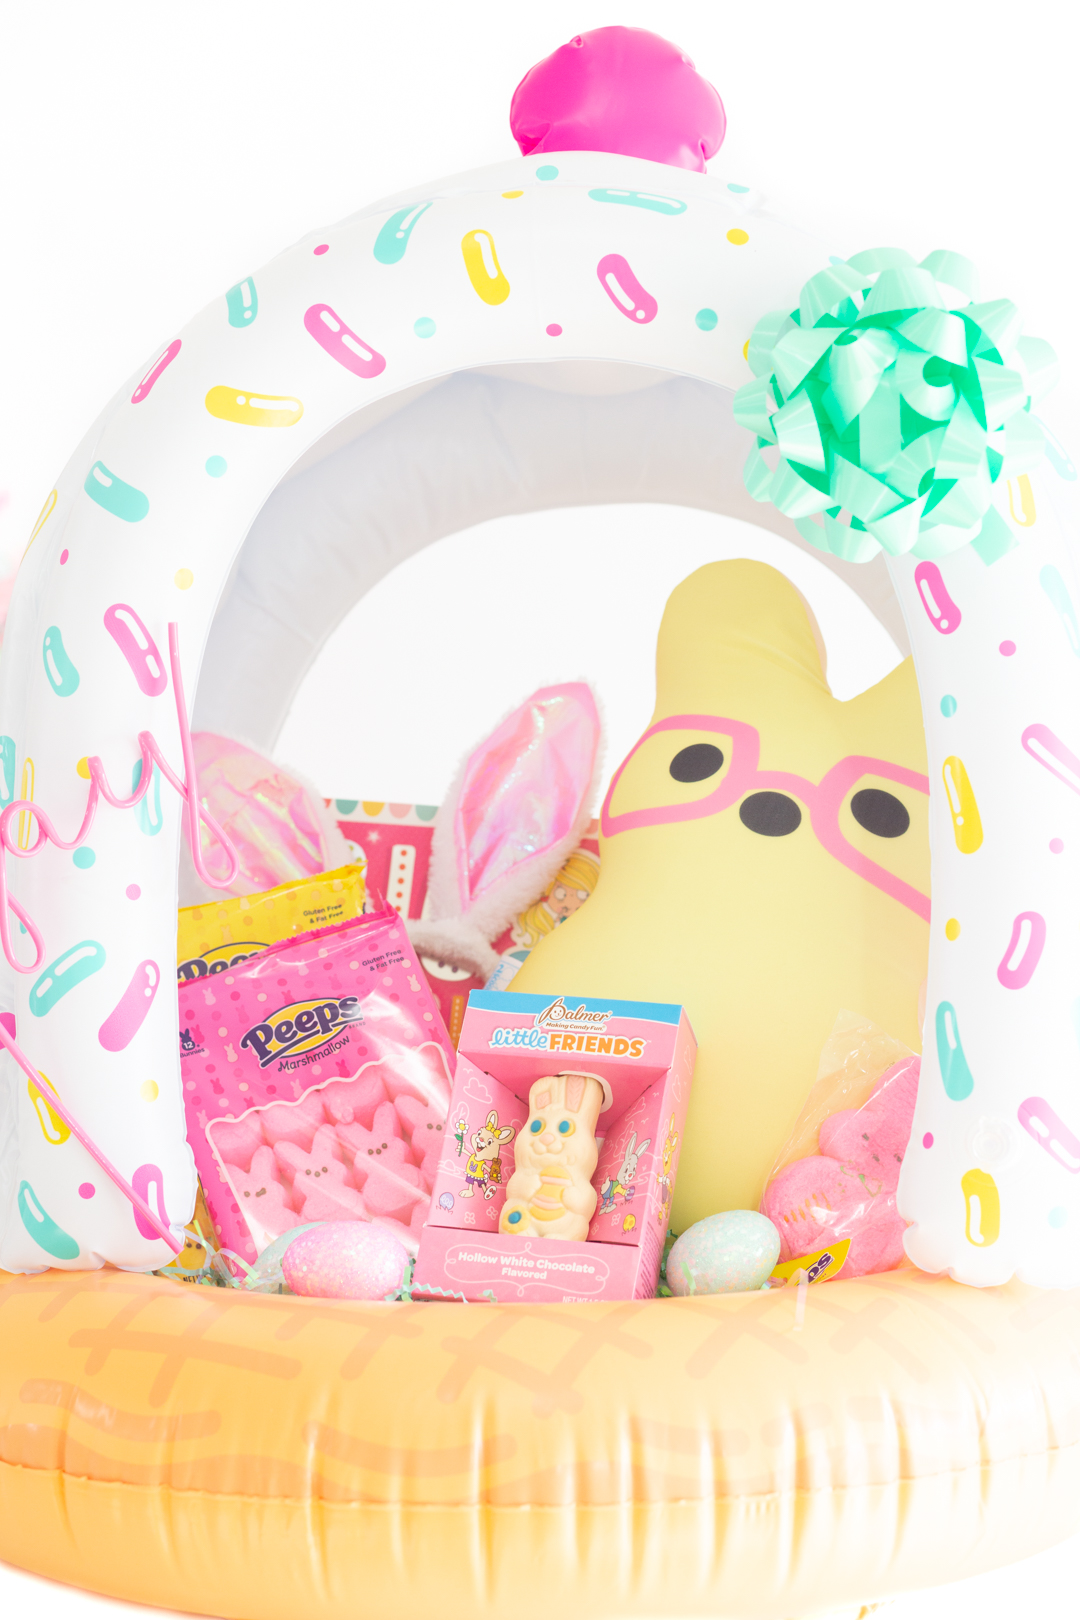 up close pastel easter basket with yellow stuffed bunny with pink glasses, pink peeps and a white chocolate hollow bunny